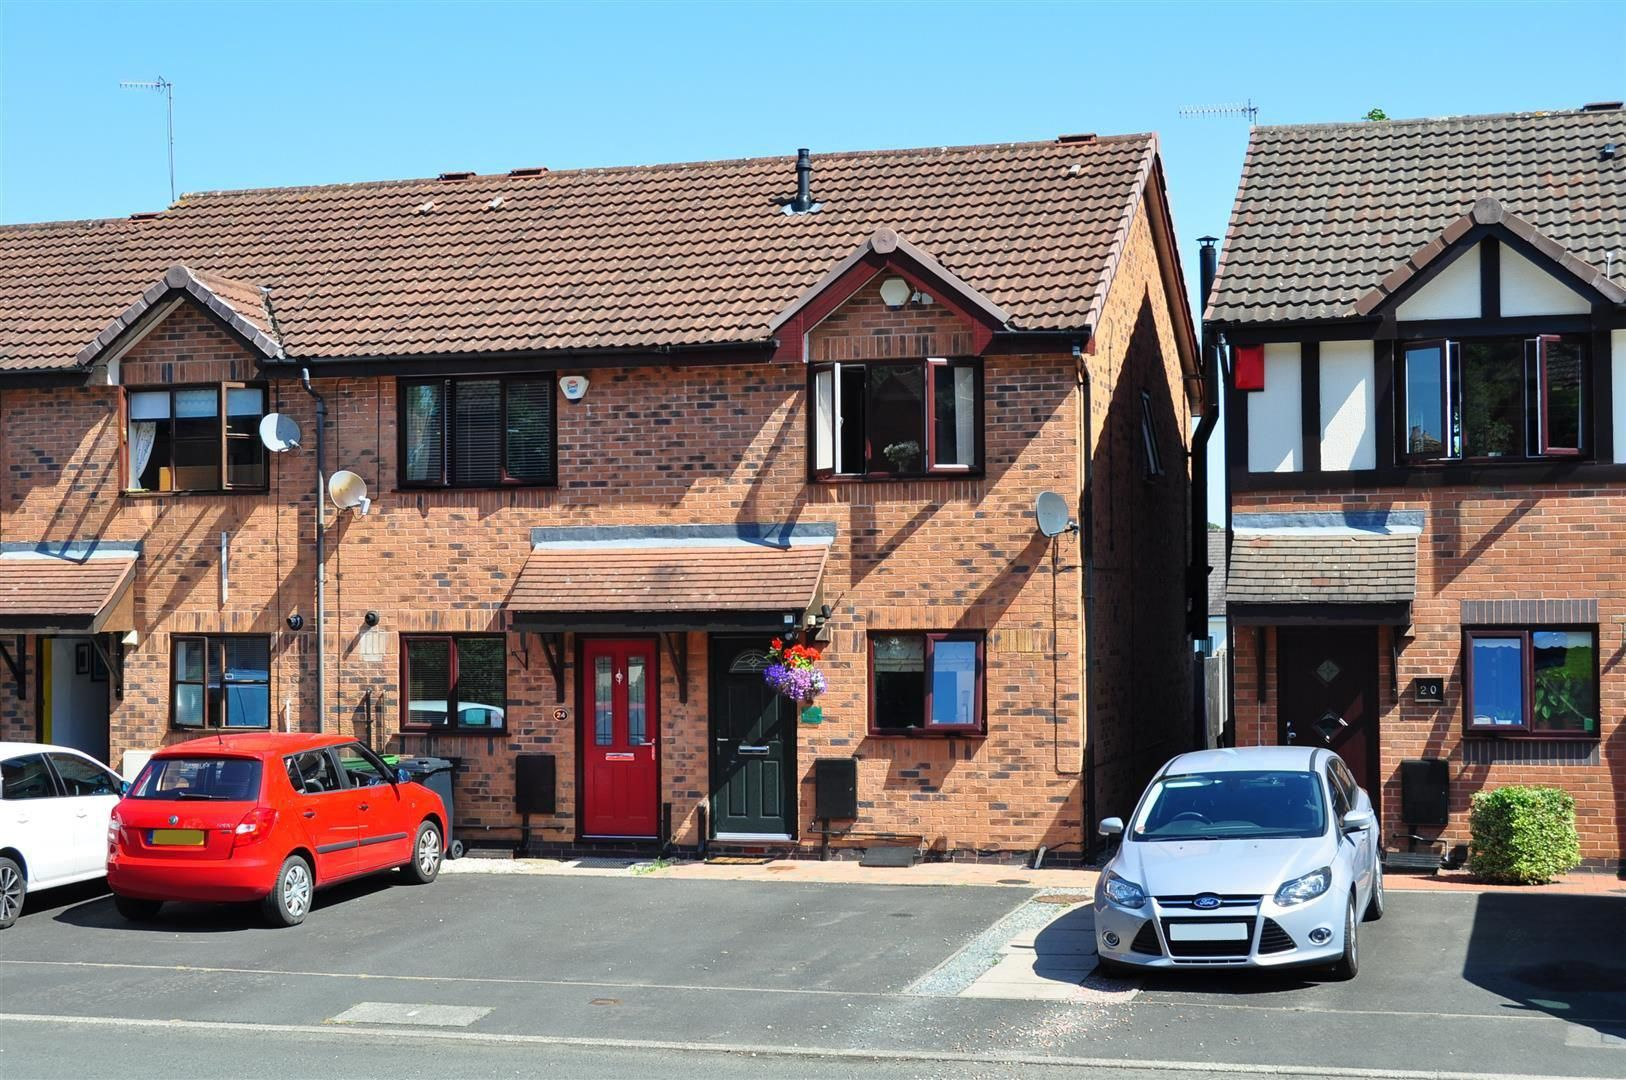 2 bed end-of-terrace for sale 20